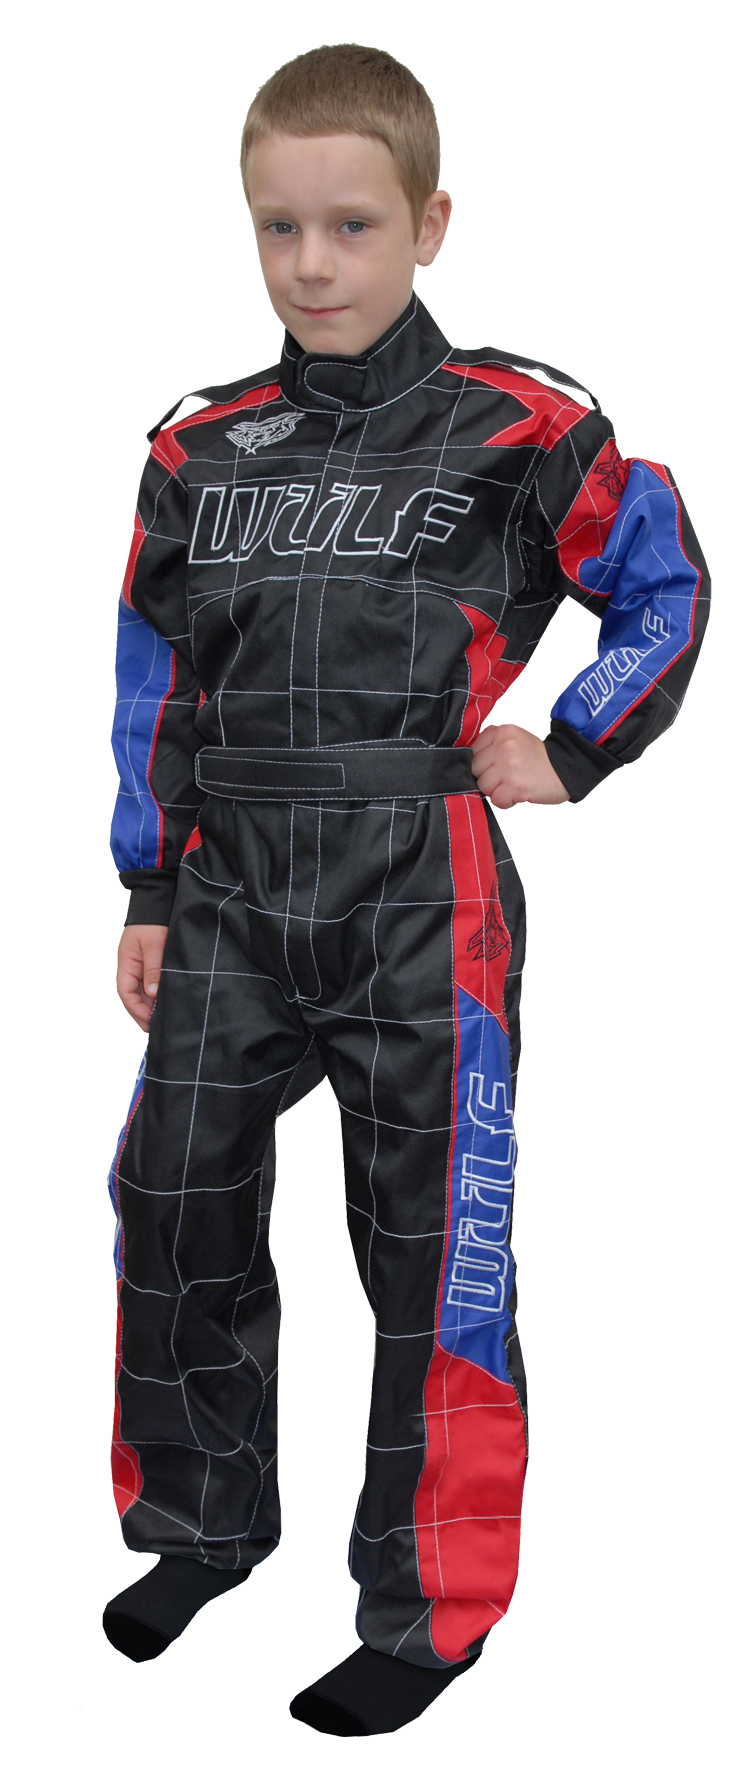 Wulfsport Cub Grand Prix Racing Suit - Black/Red/Blue